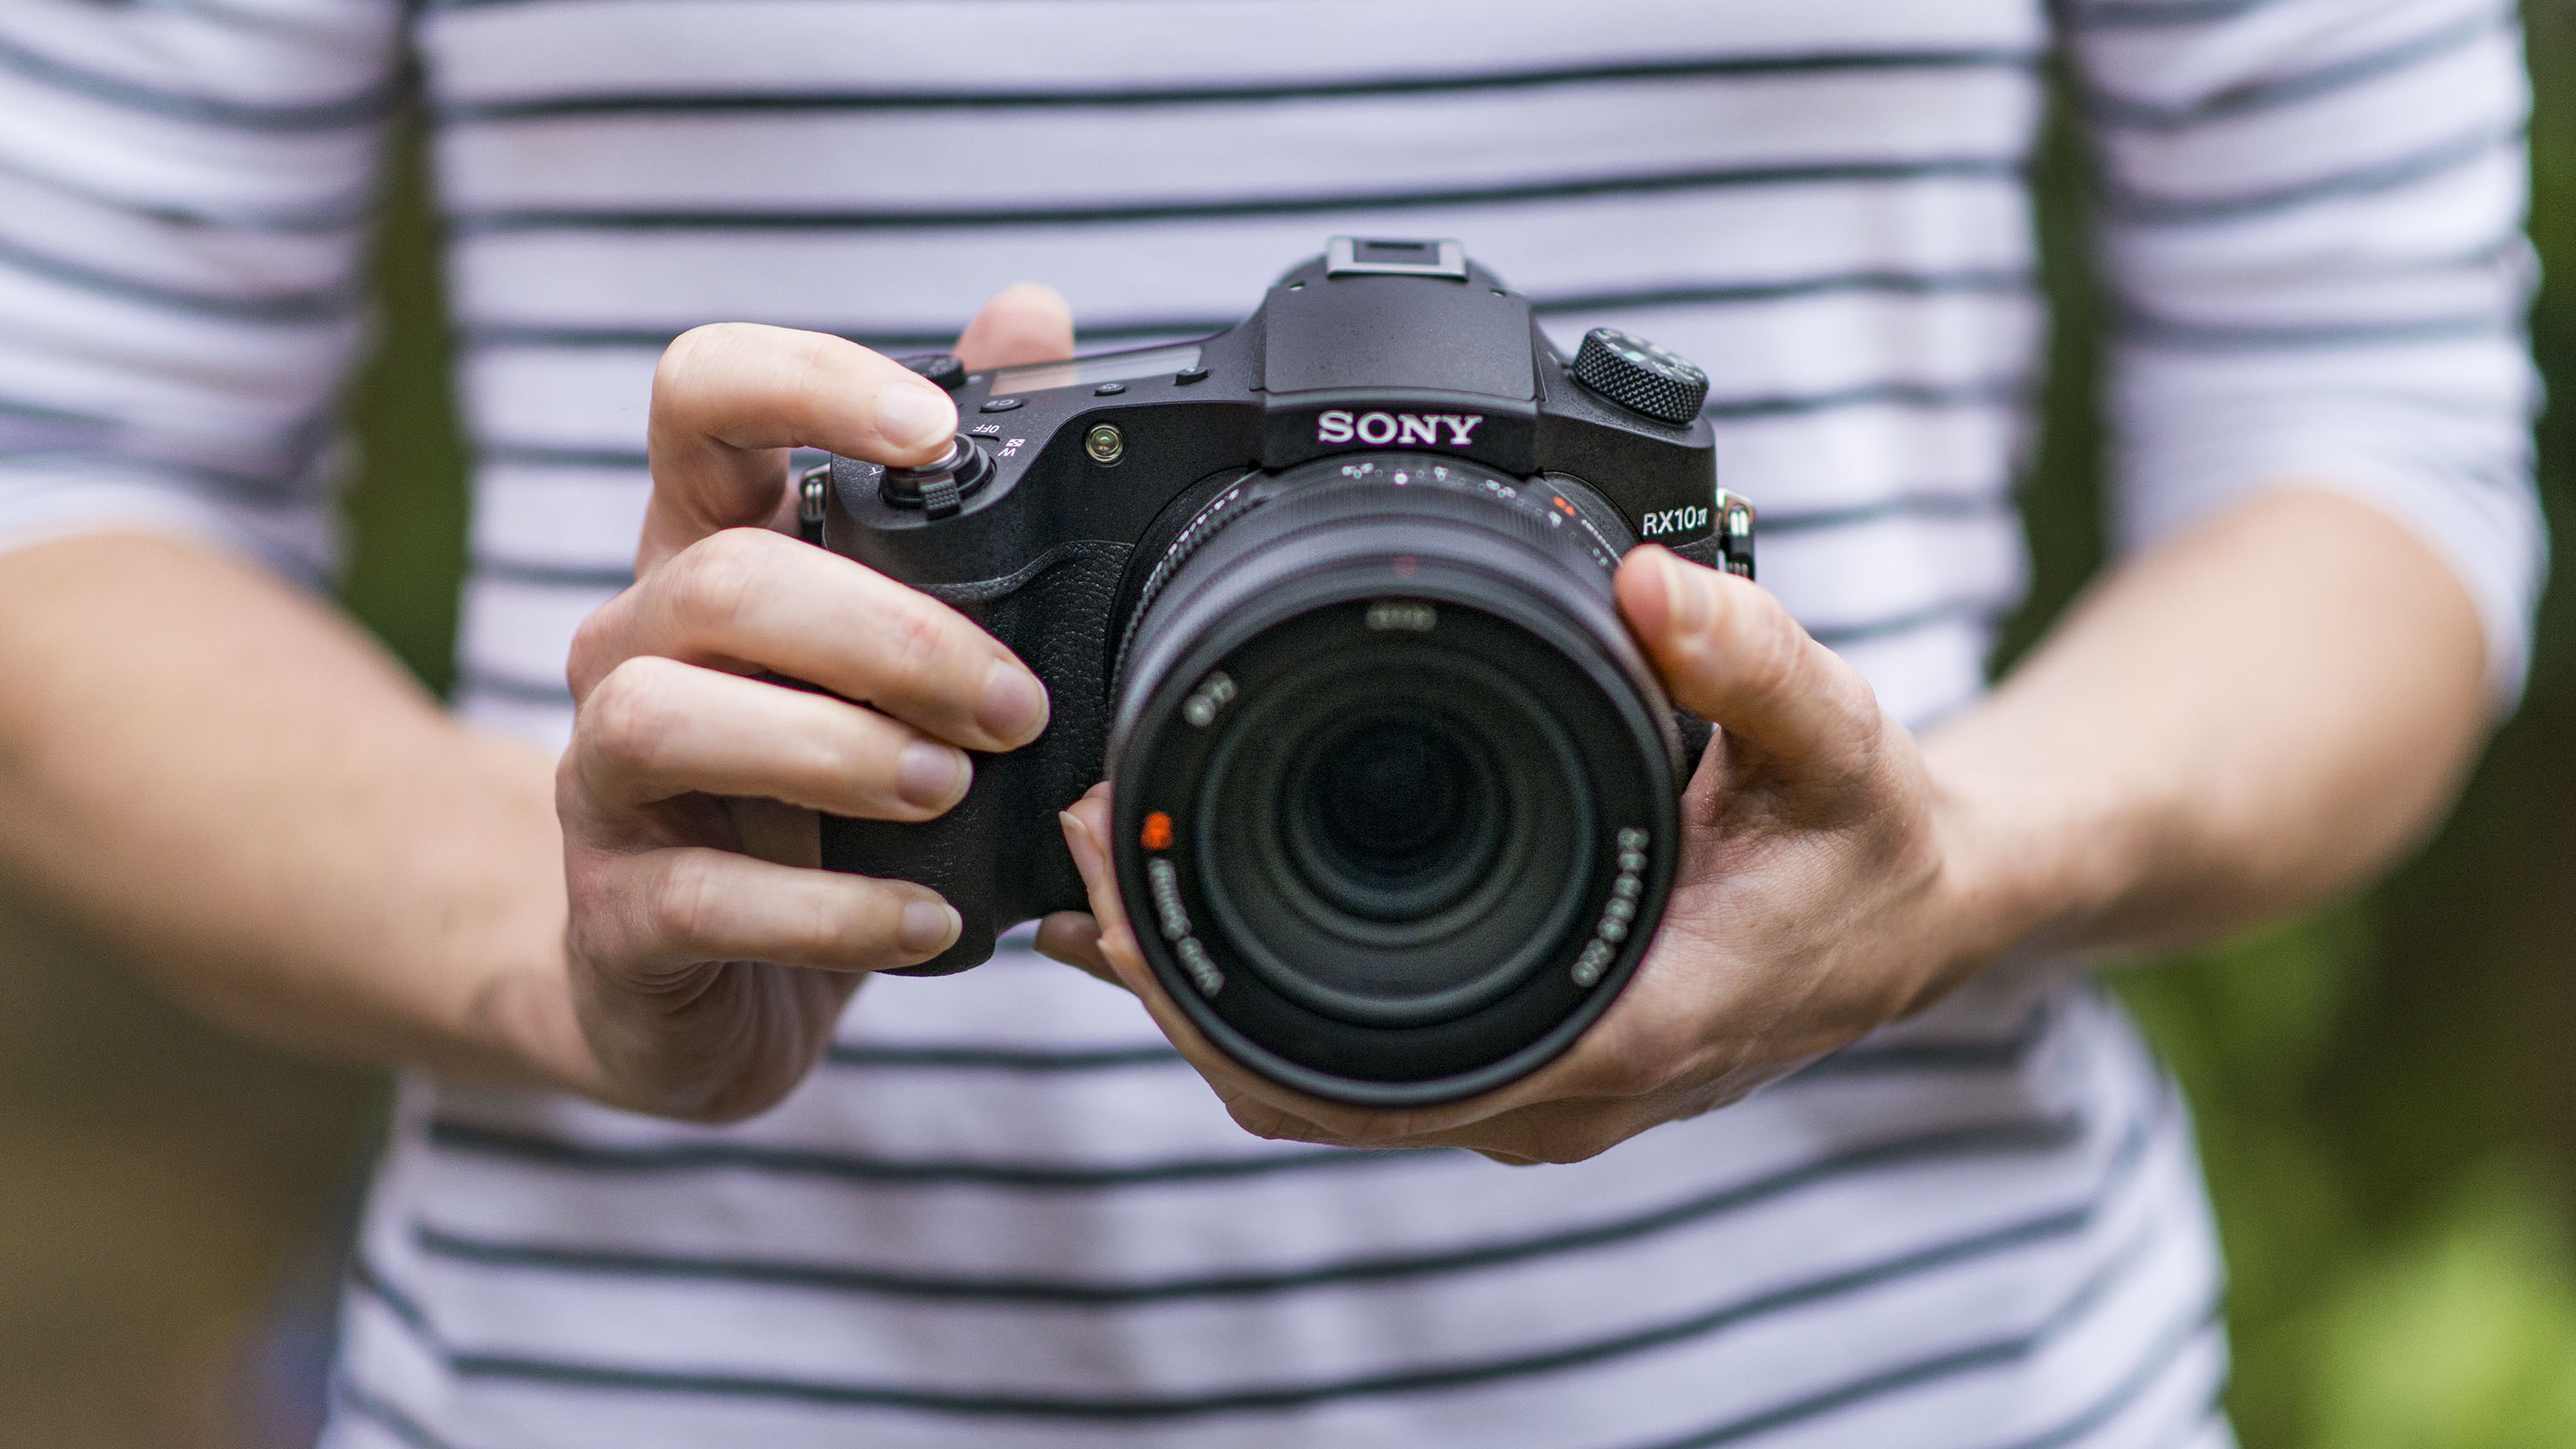 Sony Cyber-shot RX10 IV review | TechRadar